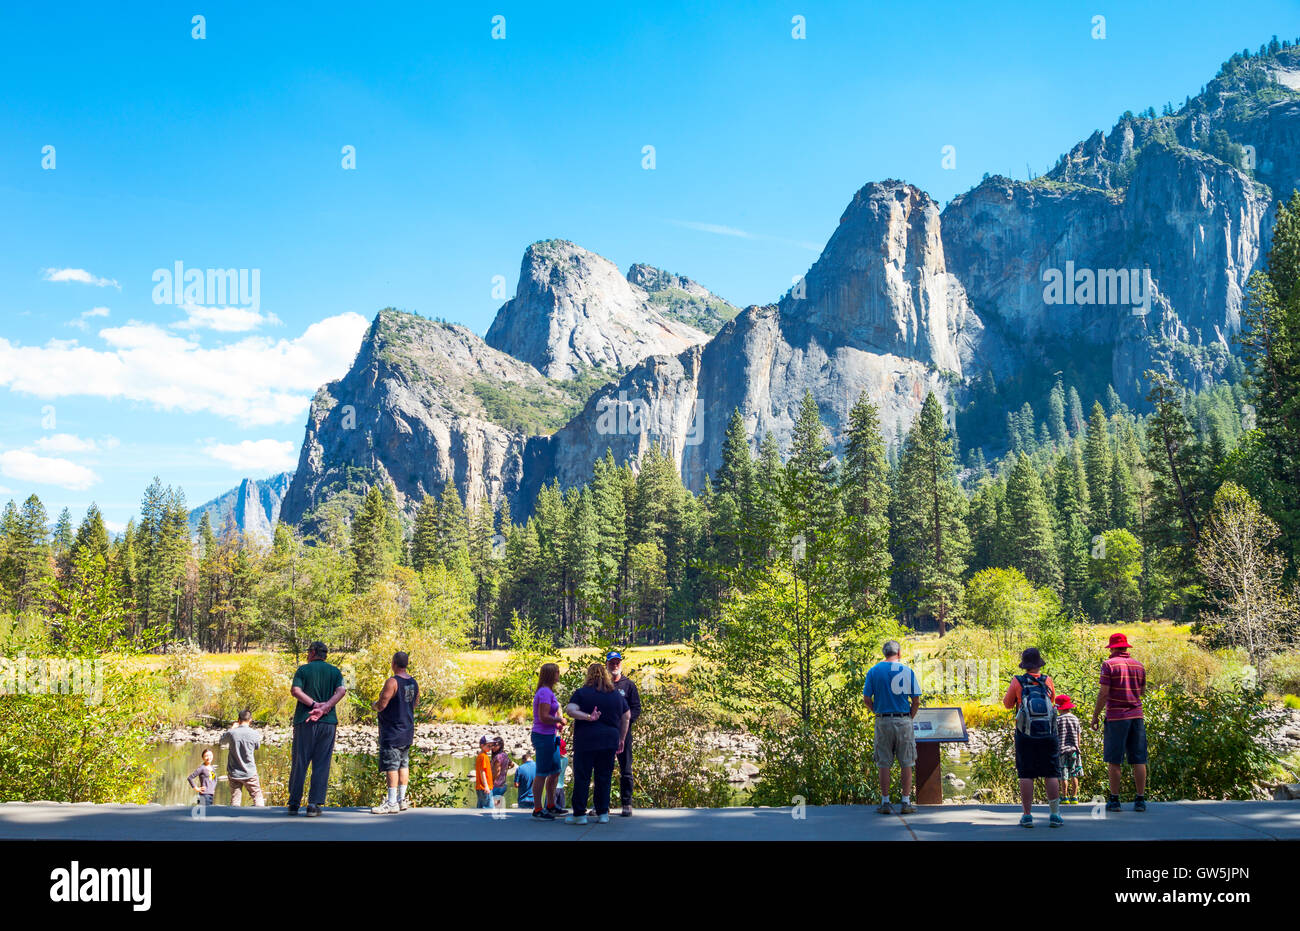 Yosemite Park, USA - September 25, 2015: Tourists looking at  the Cathedral Spires mountains - Stock Image